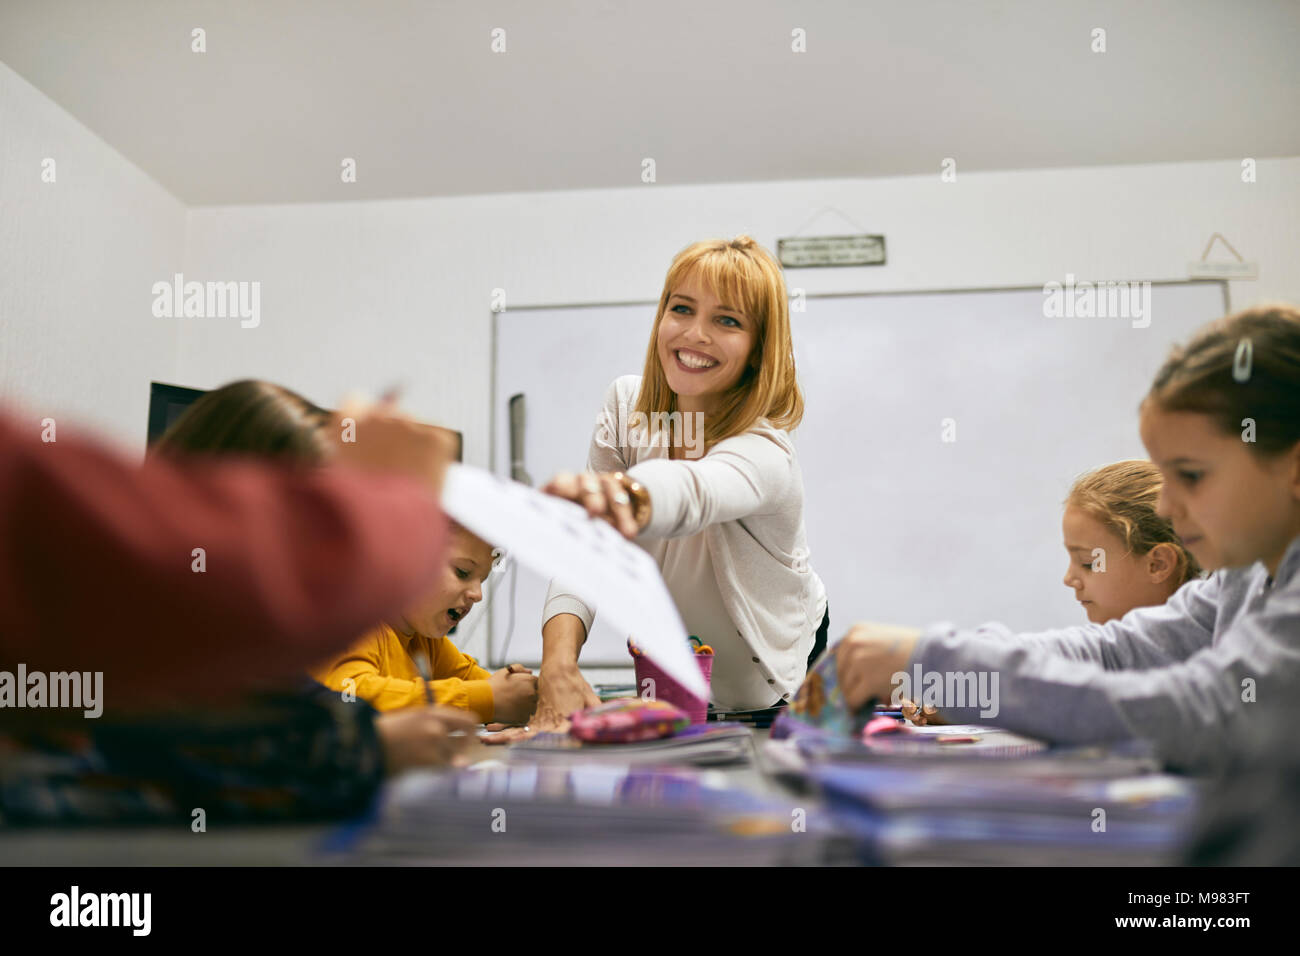 Smiling teacher handing over sheet of paper to student in class - Stock Image